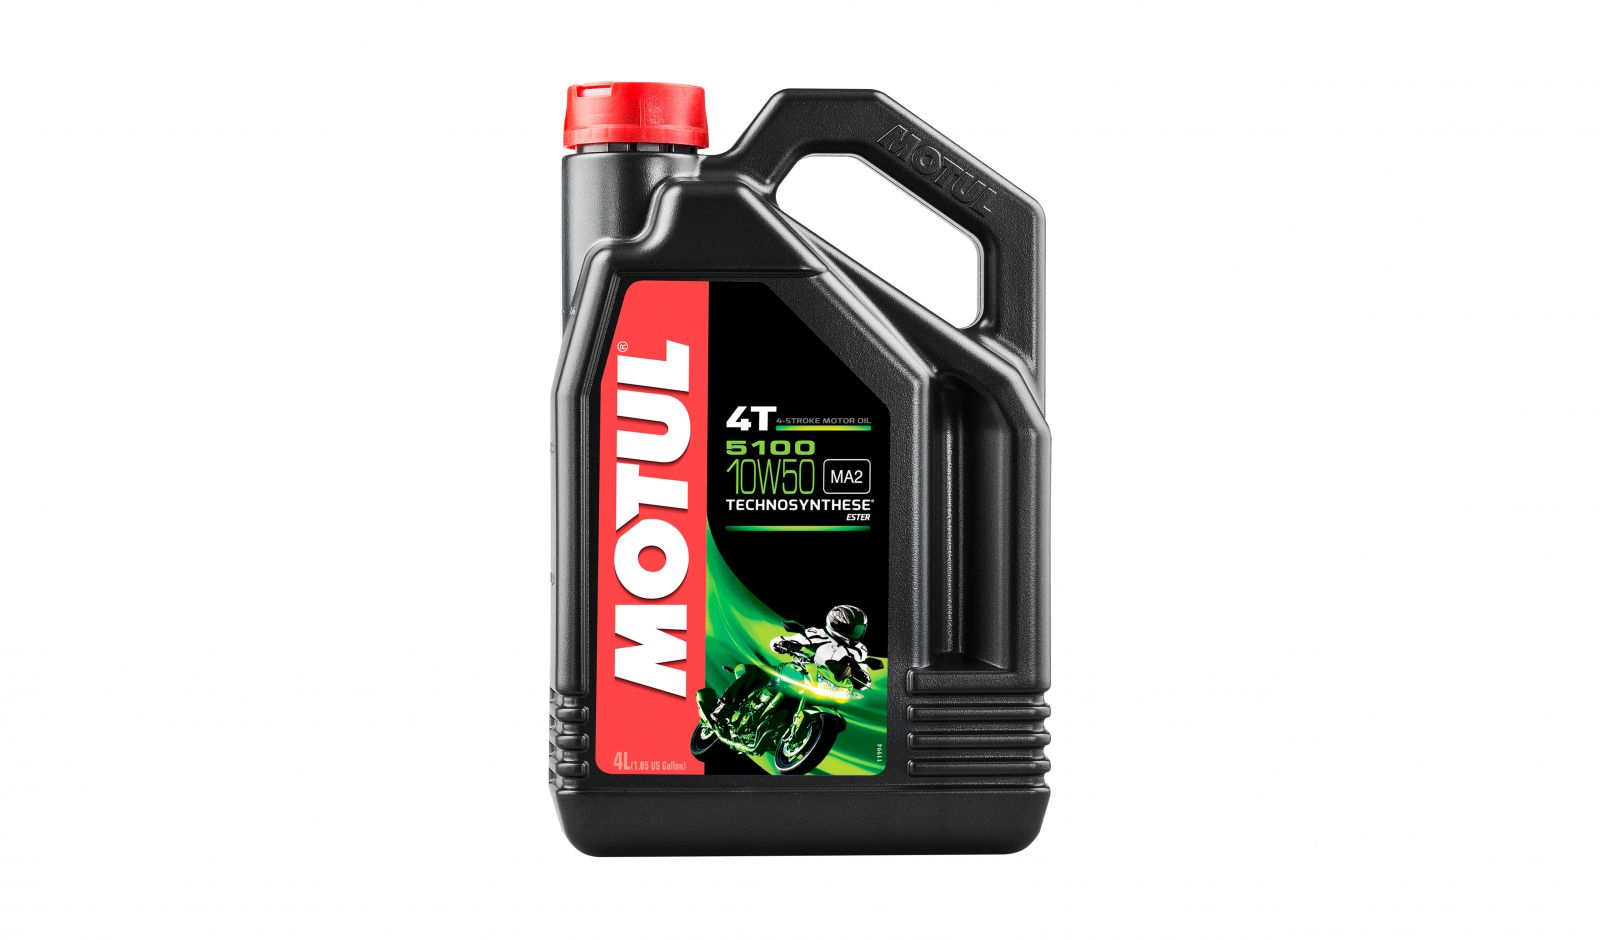 4 stroke engine oils - 670154M image